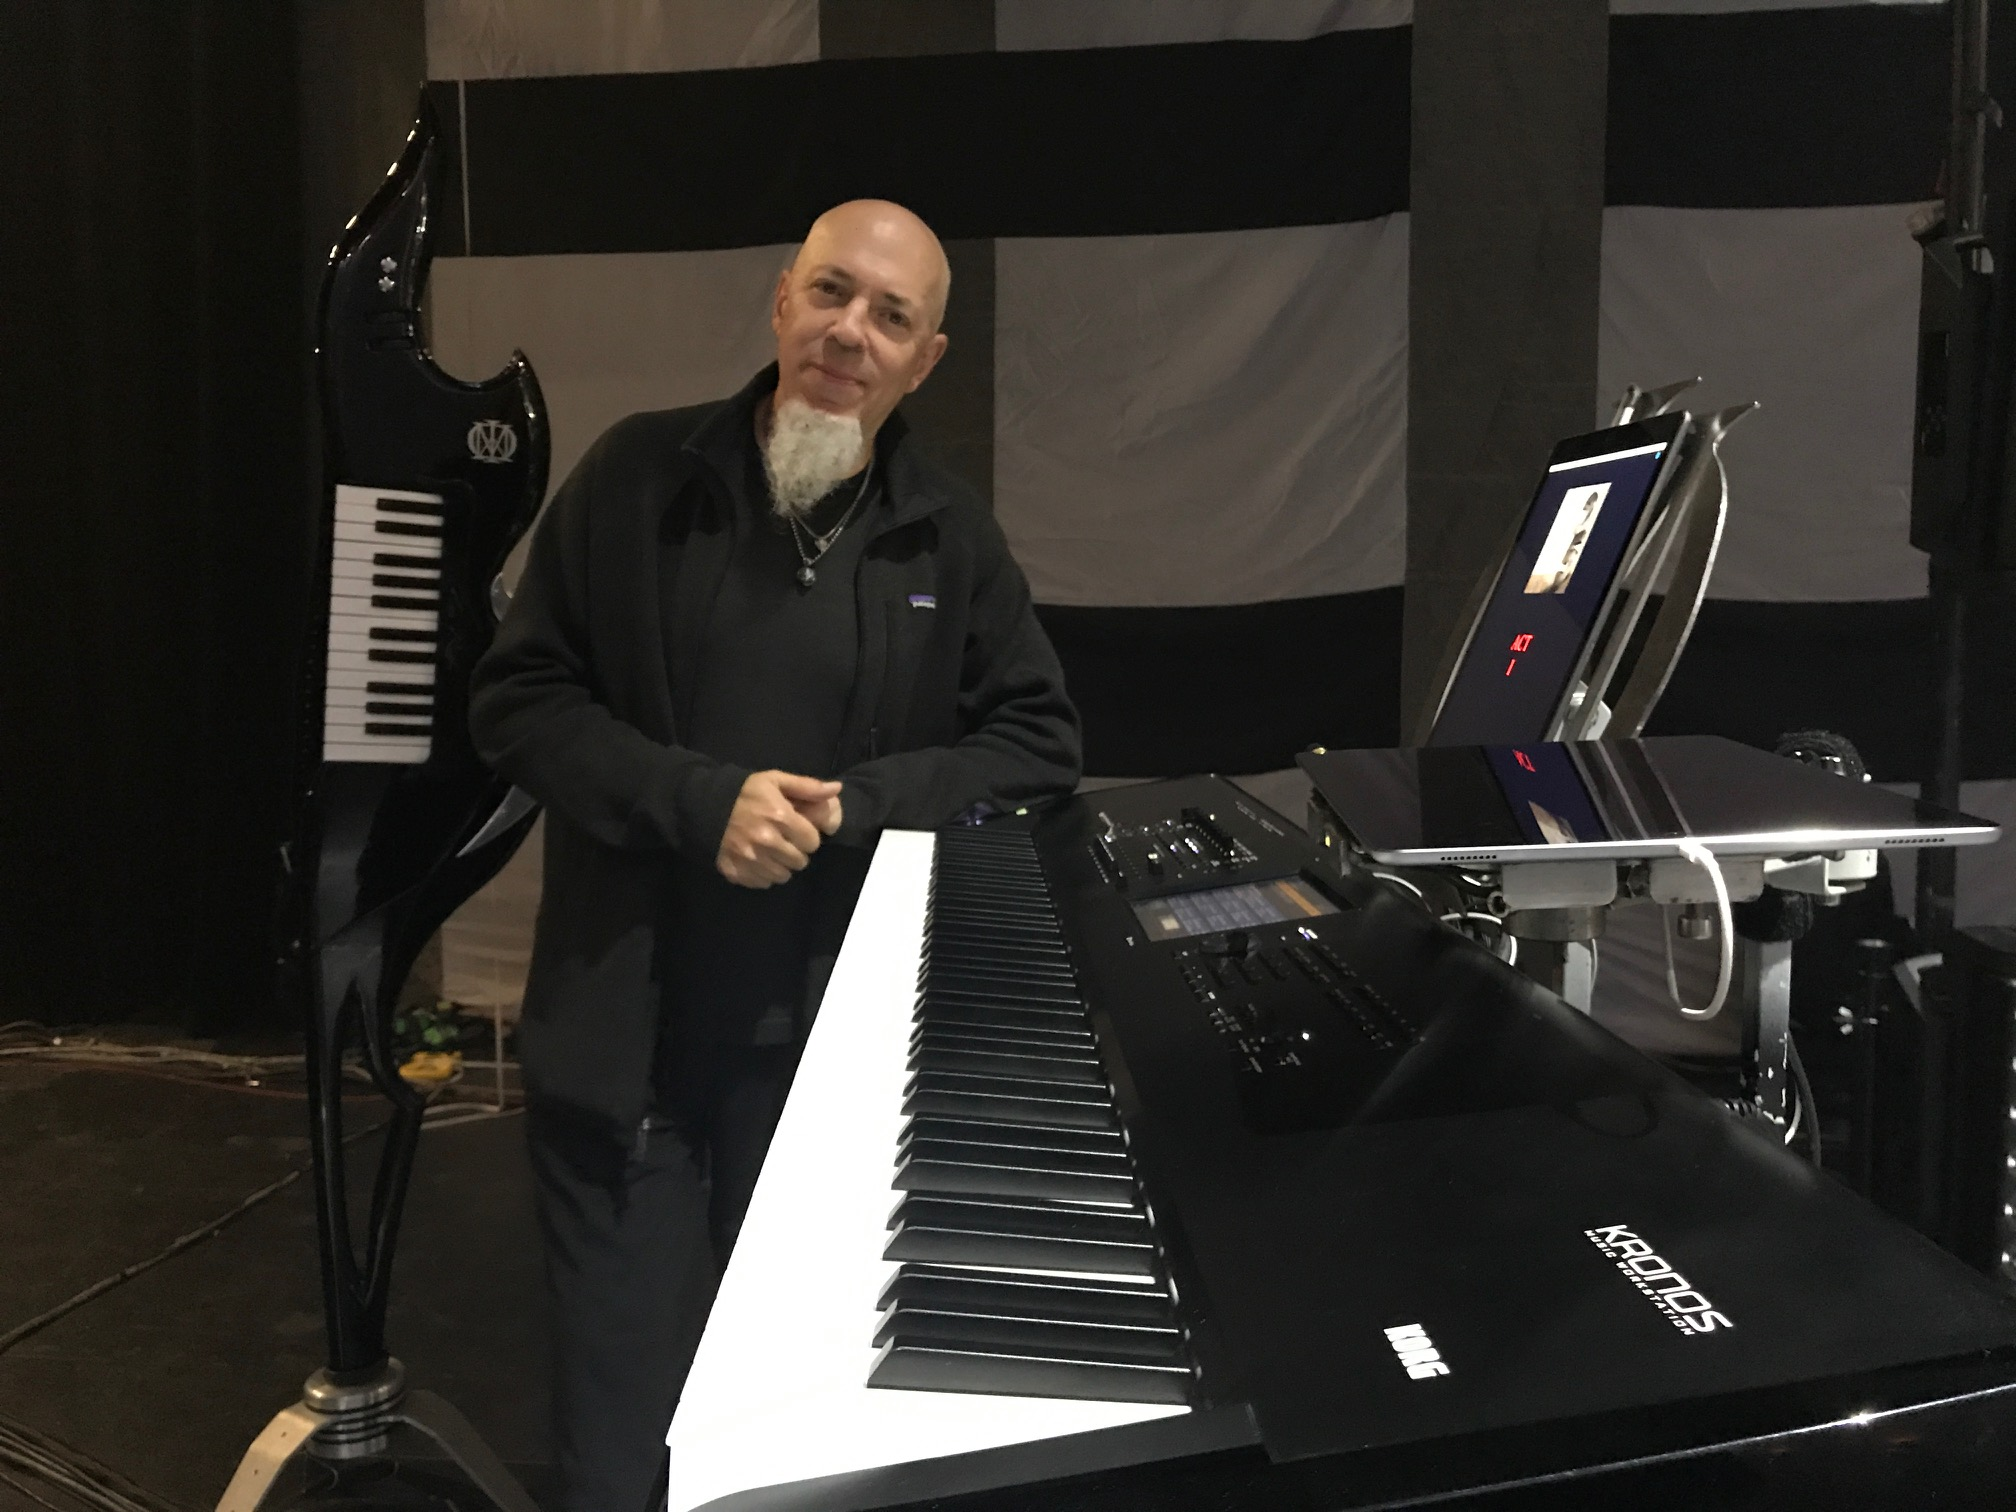 An evening with Jordan Rudess